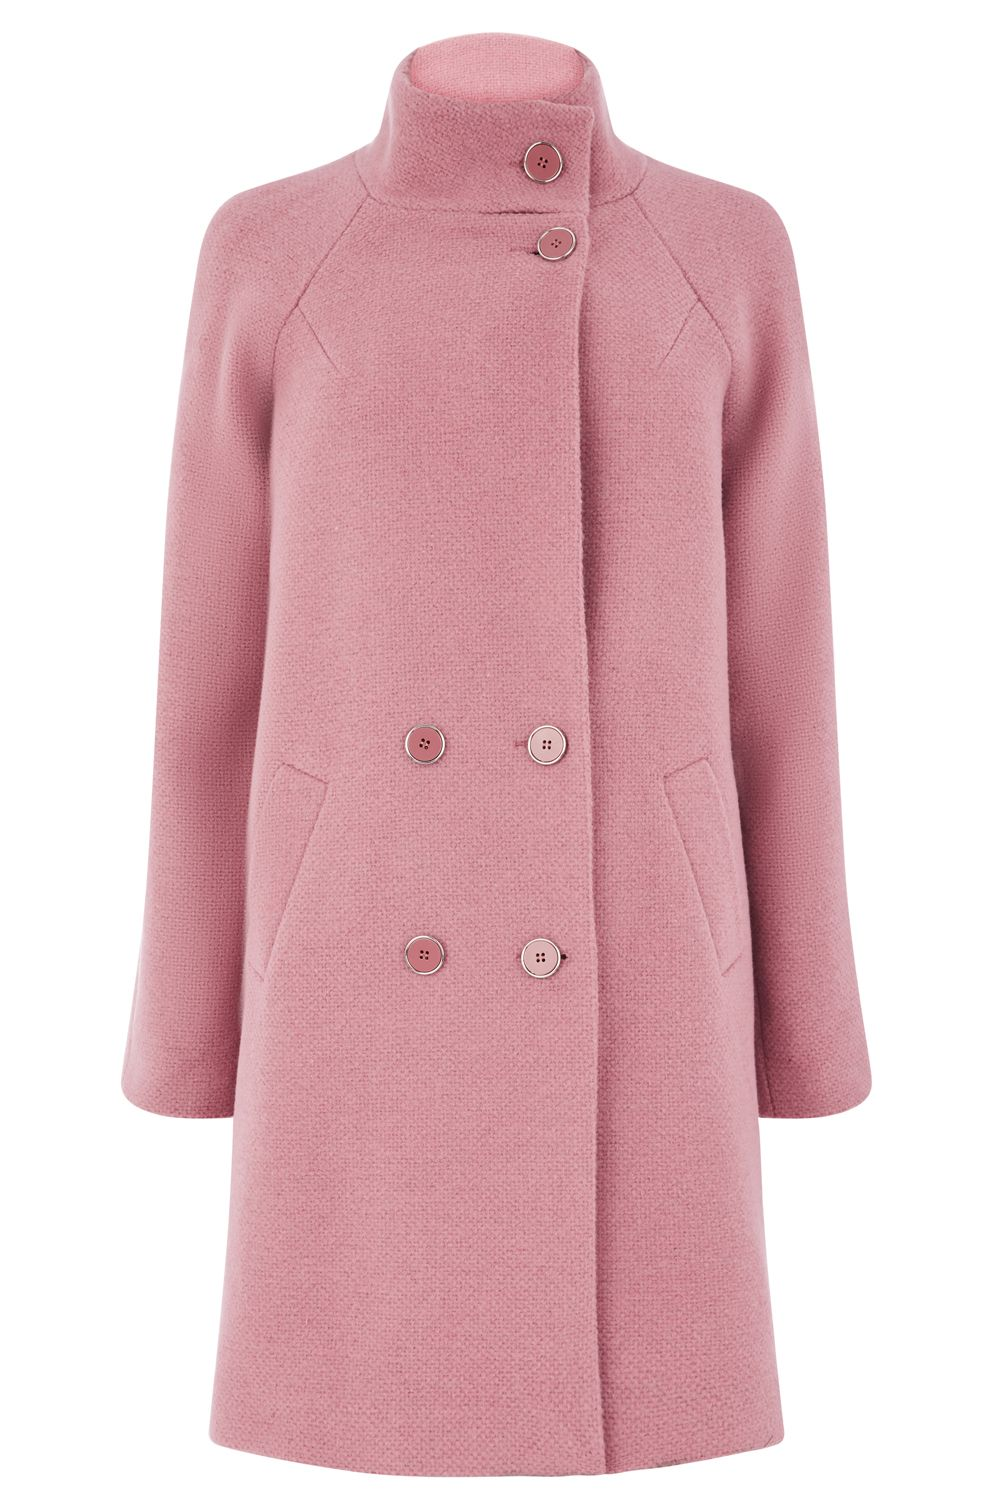 Pink Coats | Shop Coats & Jackets - House of Fraser